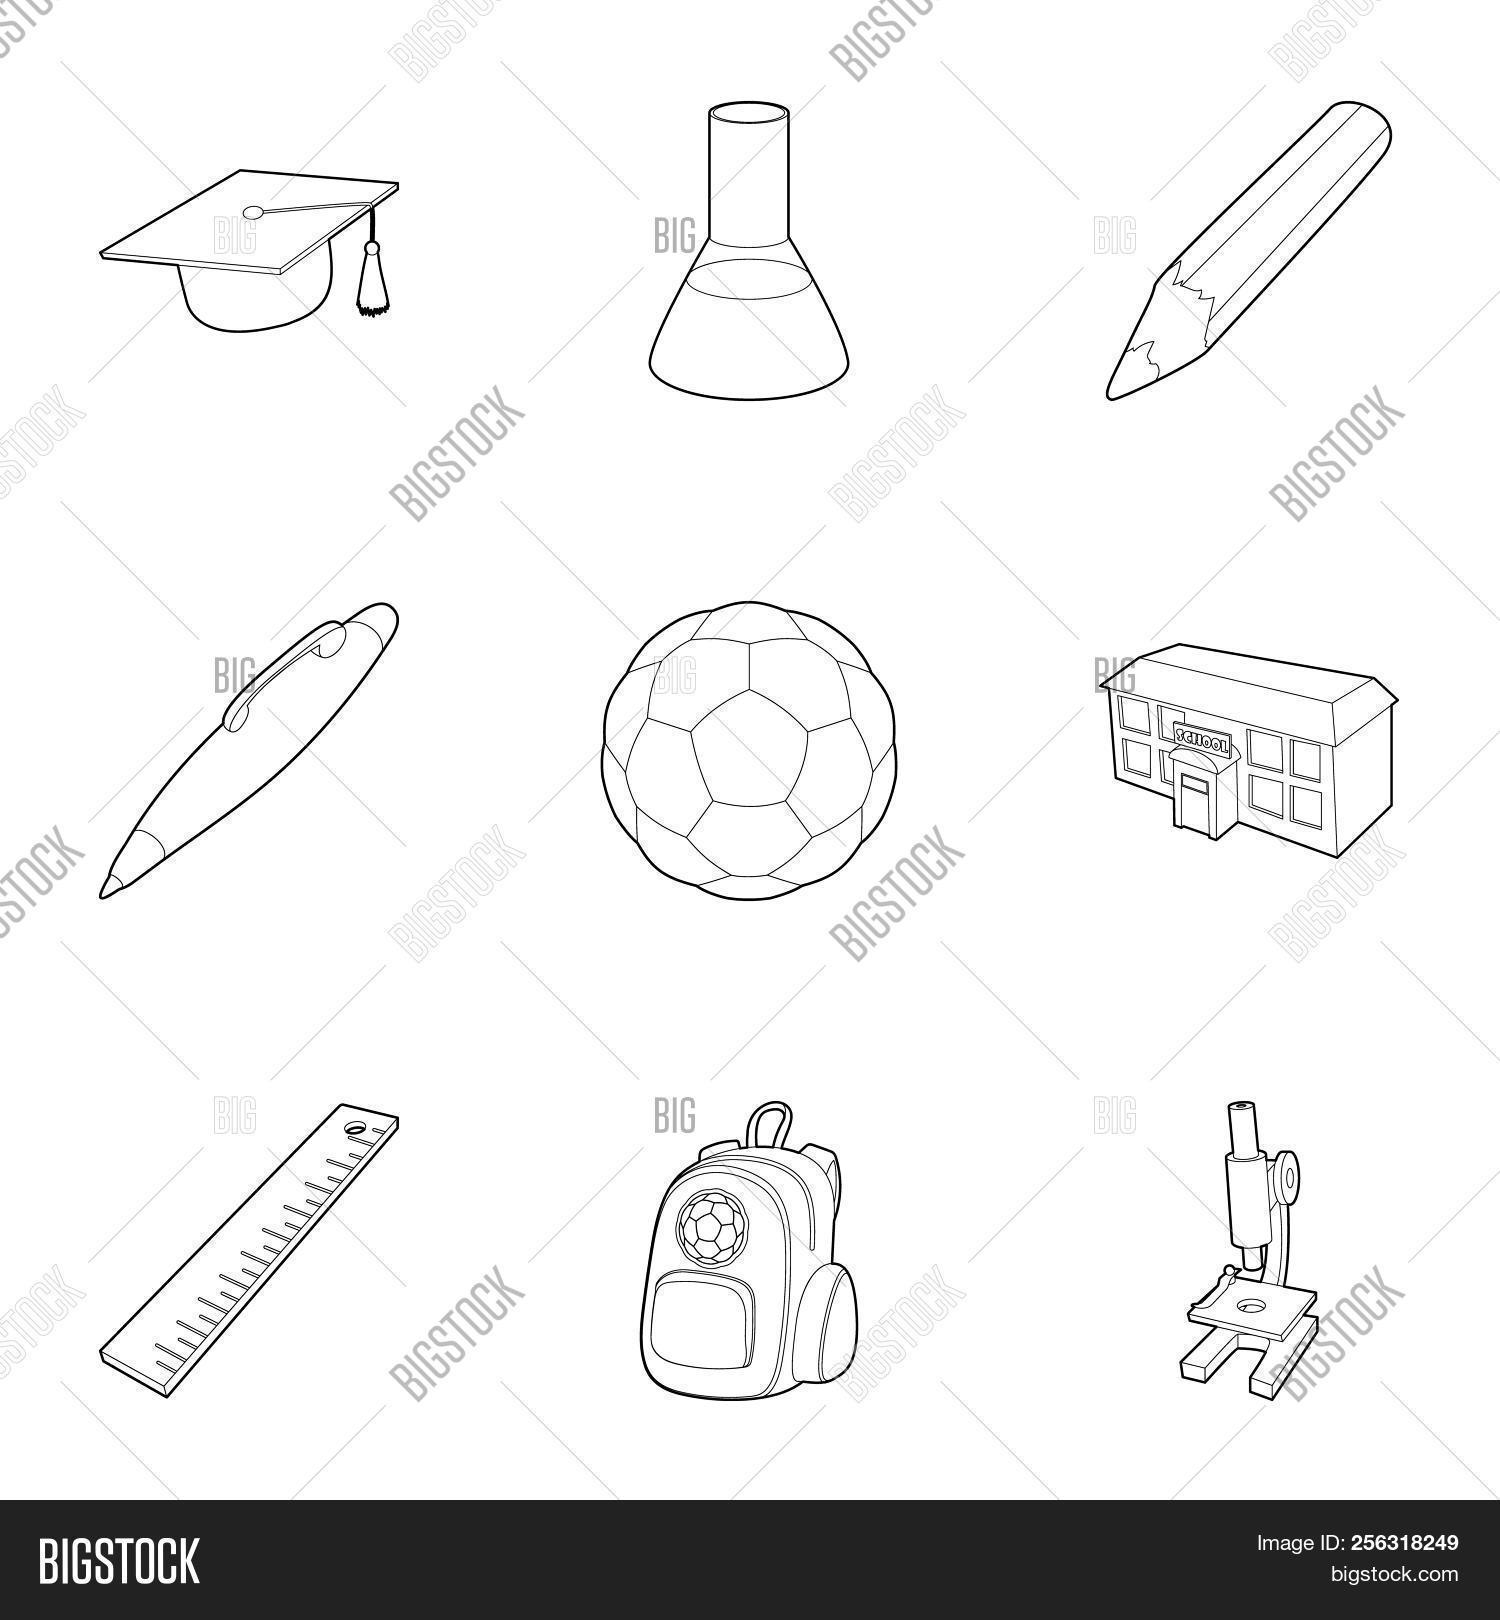 Schoolhouse icons set. Outline illustration of 9 schoolhouse icons for web